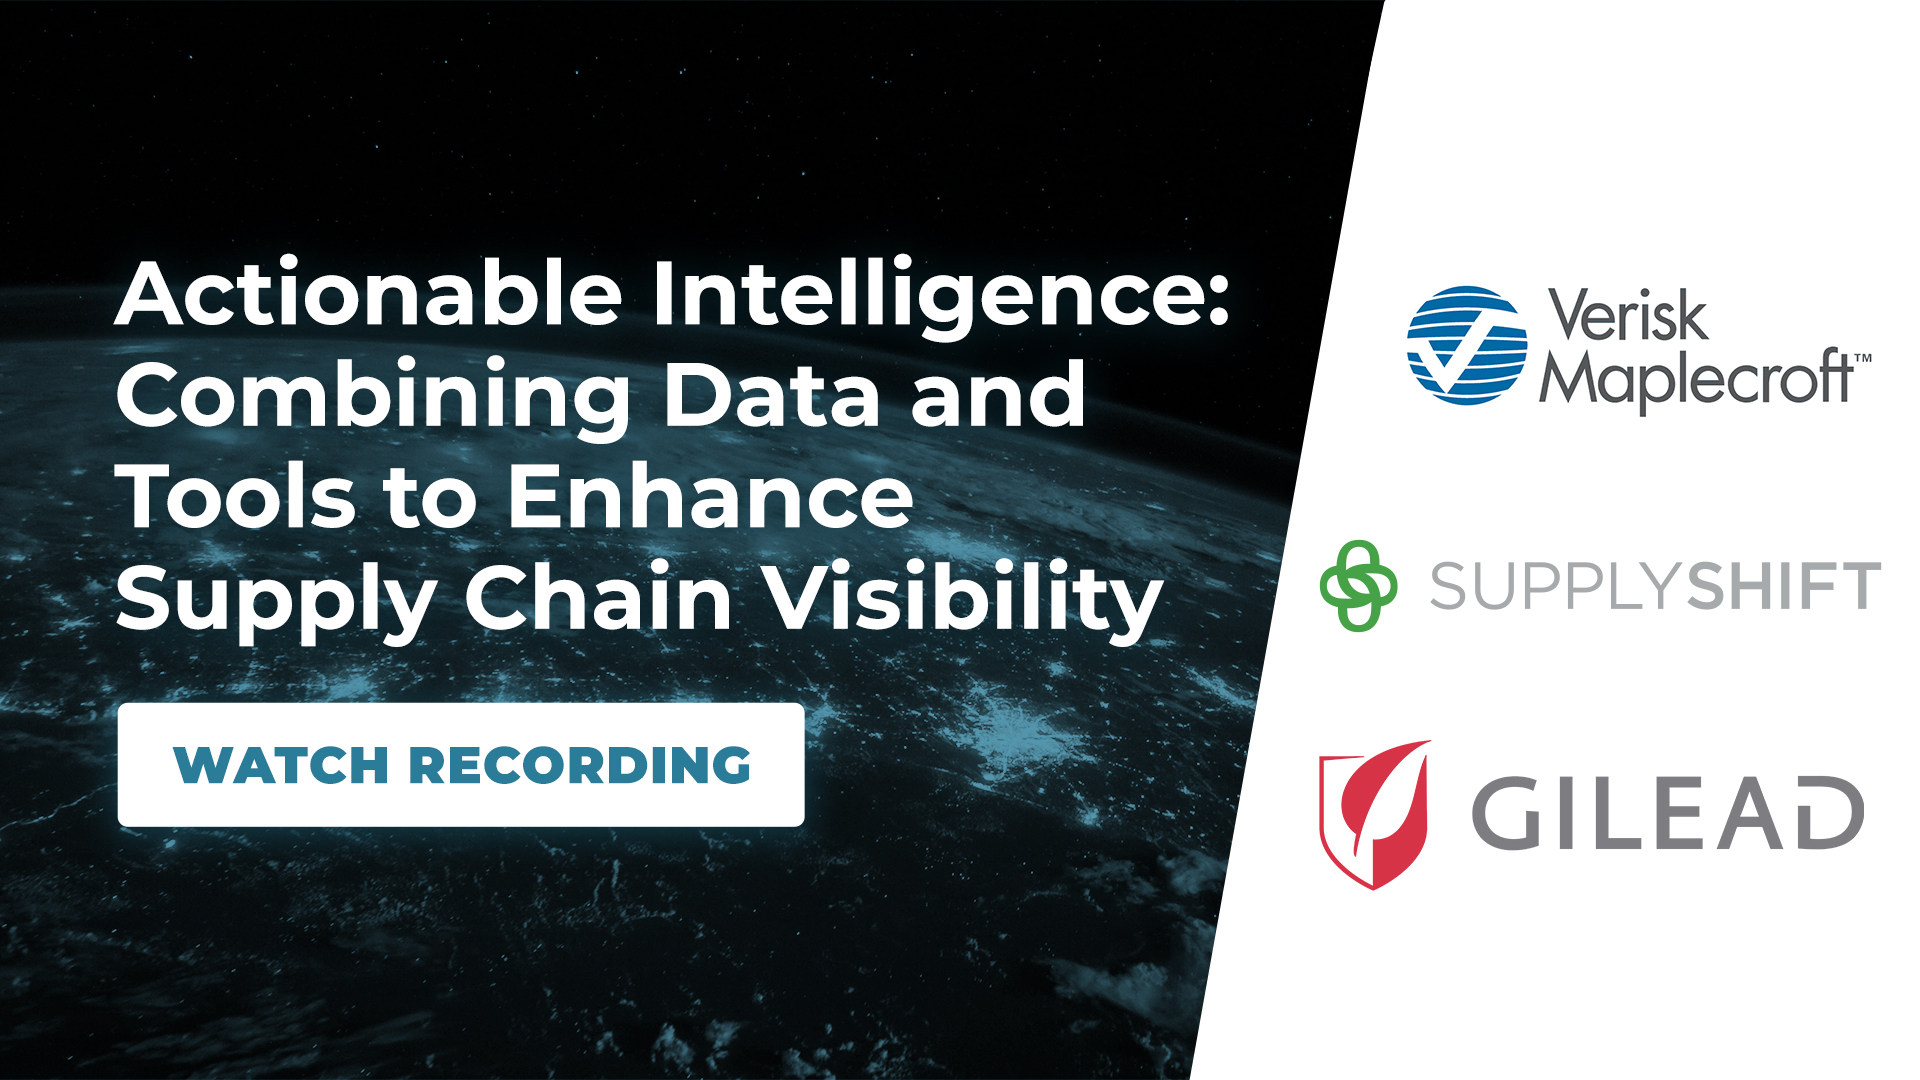 Actionable Intelligence: Combining data and tools to enhance supply chain visibility